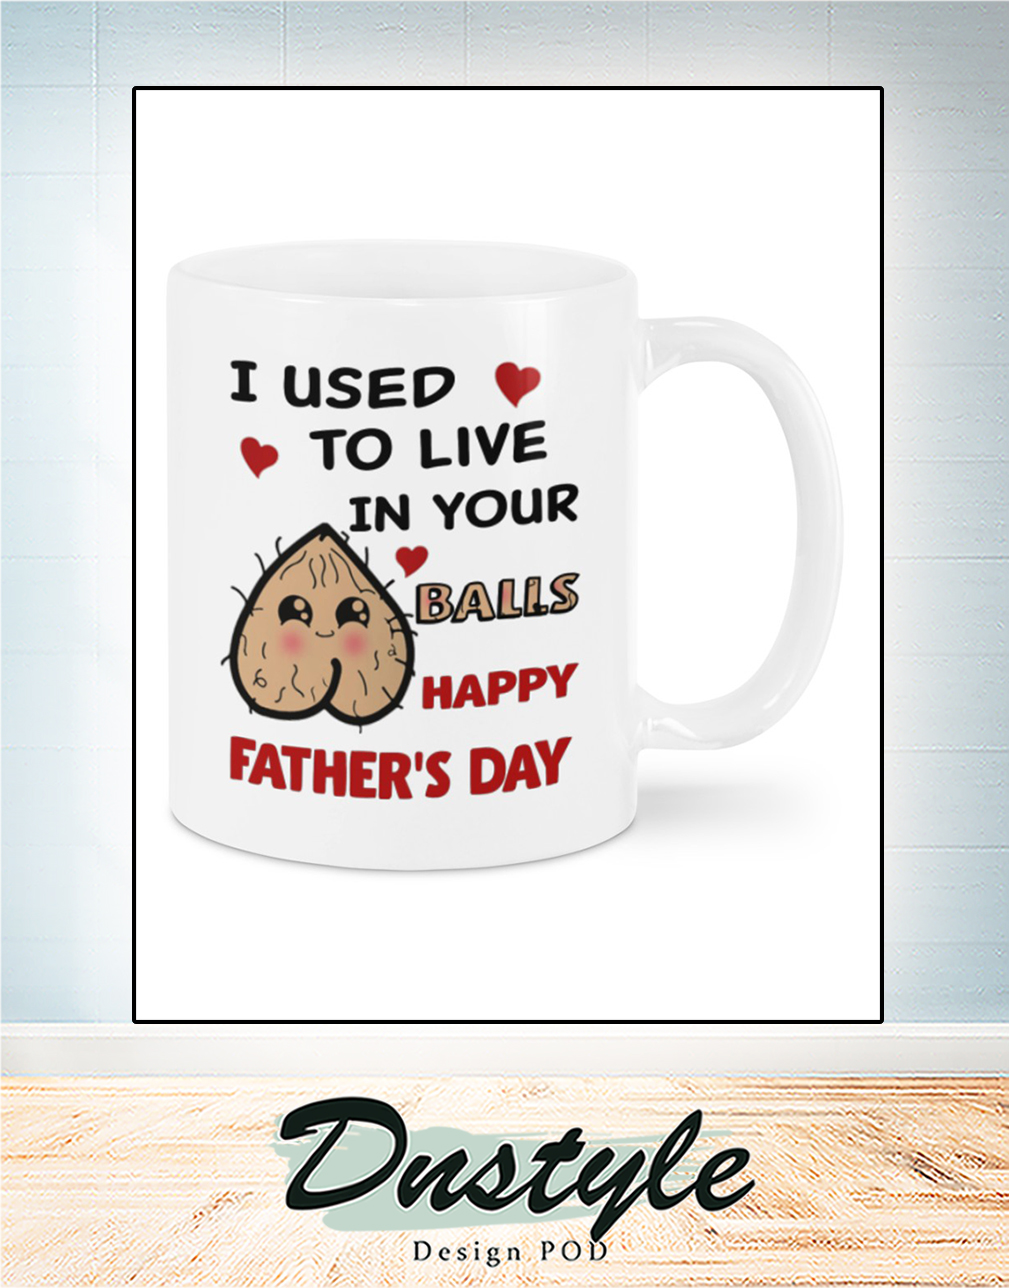 I used to live in your balls happy father's day mug